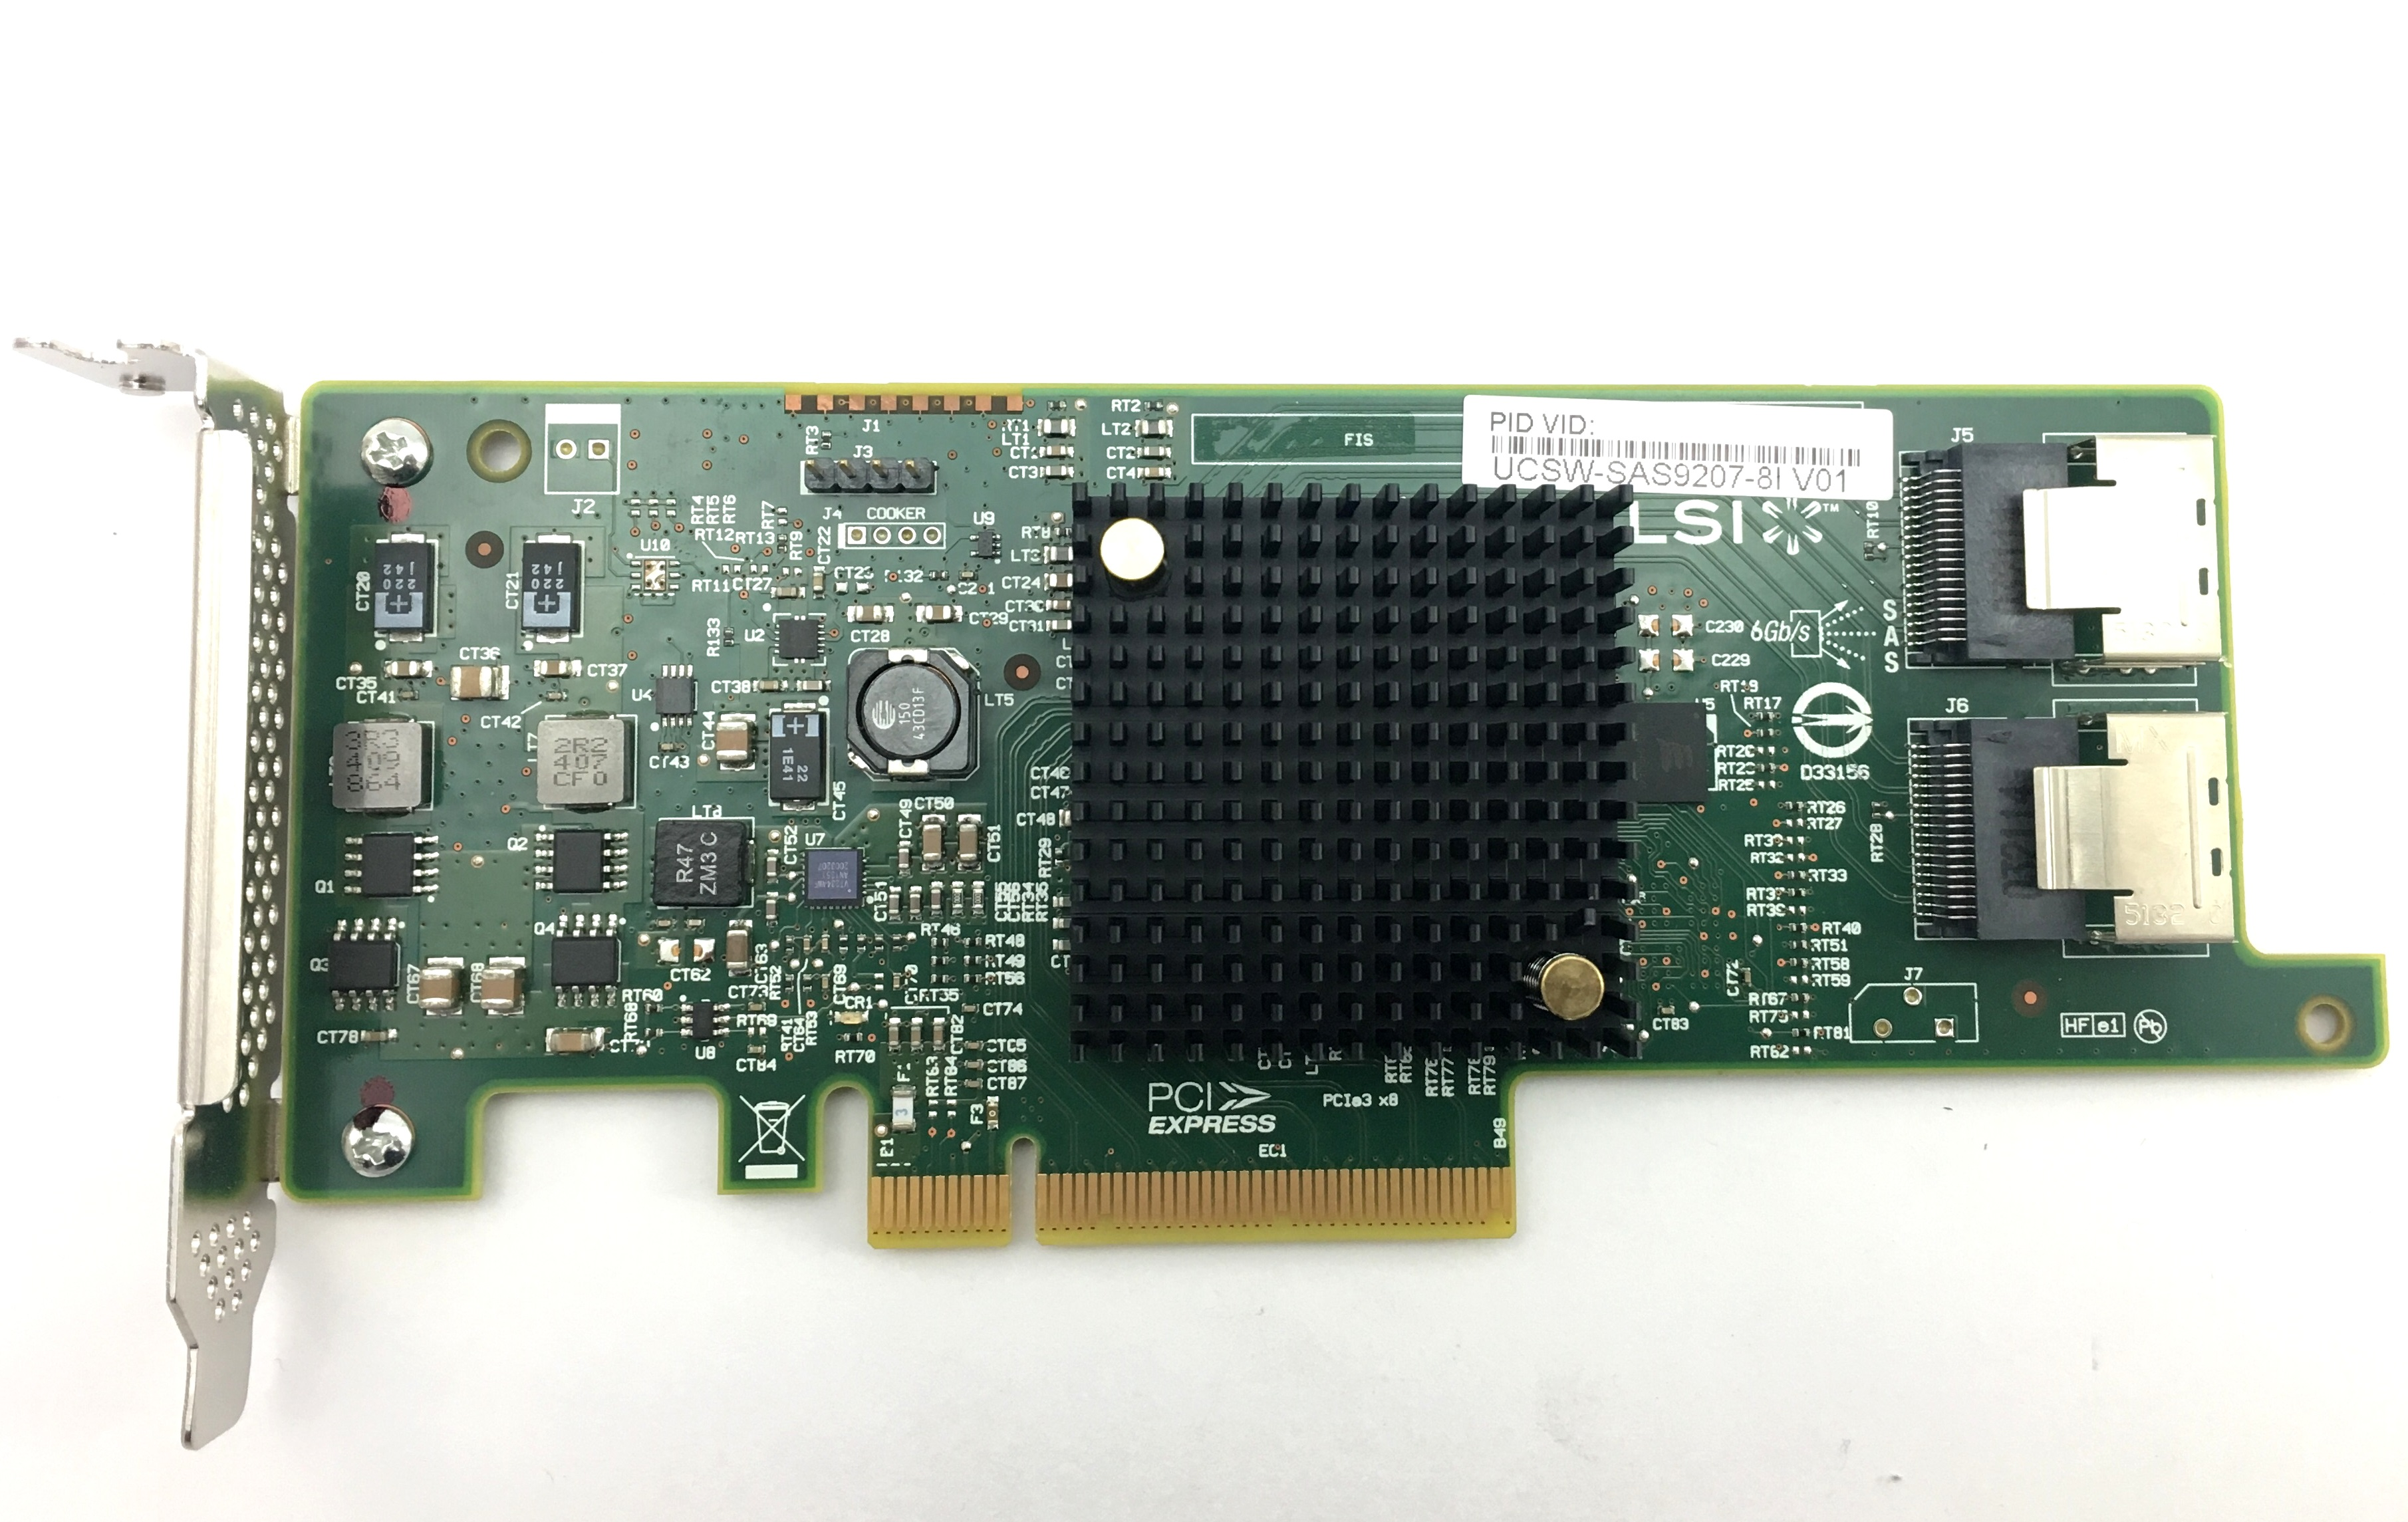 Cisco Lsi SAS 9207-8I 6Gbps PCI-E Host Bus Adapter (UCSW-SAS9207-8I)